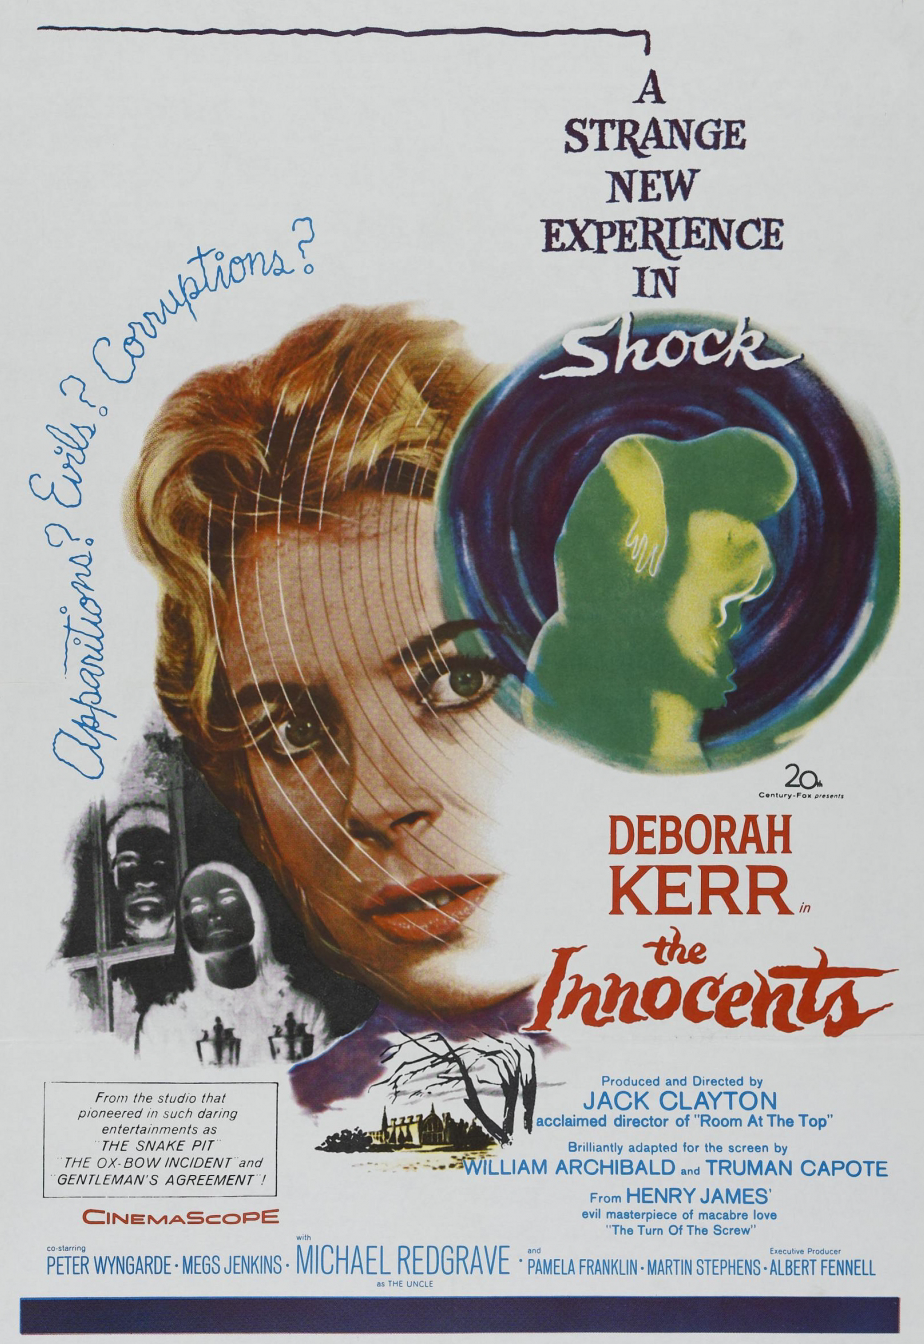 henry-james-the-innocents-starring-deborah-kerr-michael-redgrave-peter-wyngarde-and-megs-jenkins-poster.png